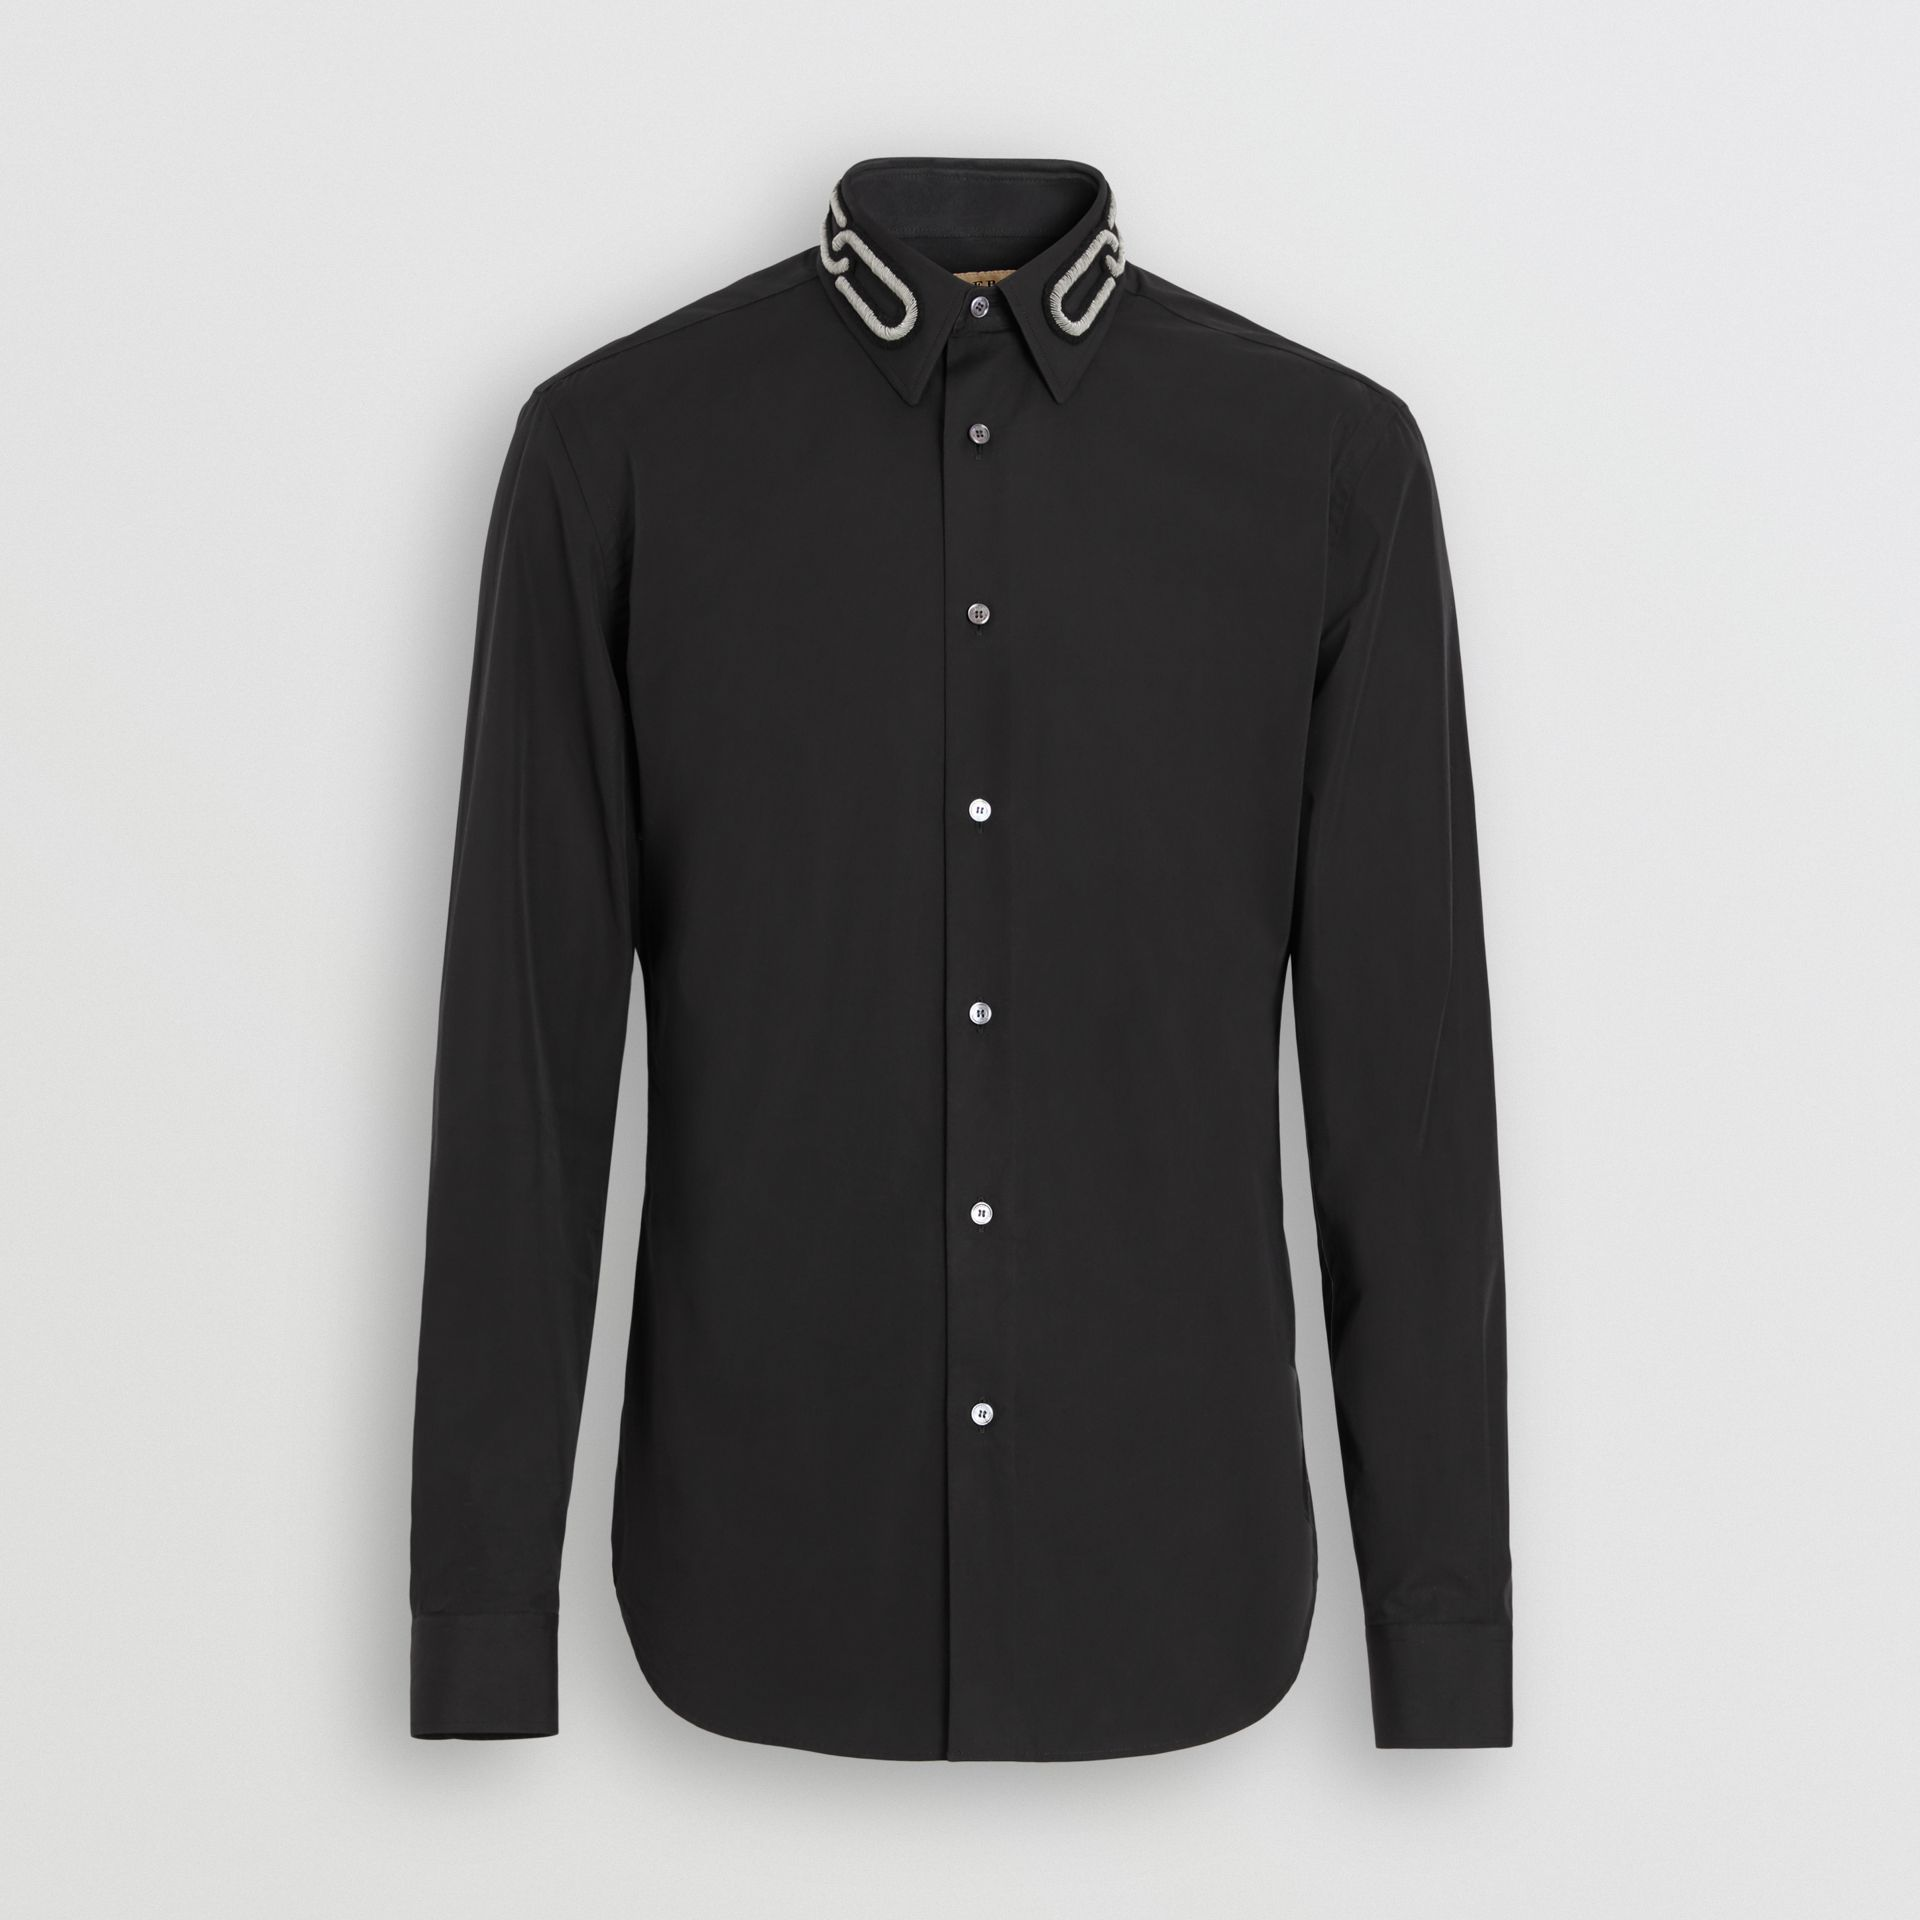 Slim Fit Bullion Link Cotton Poplin Dress Shirt in Black - Men | Burberry - gallery image 3